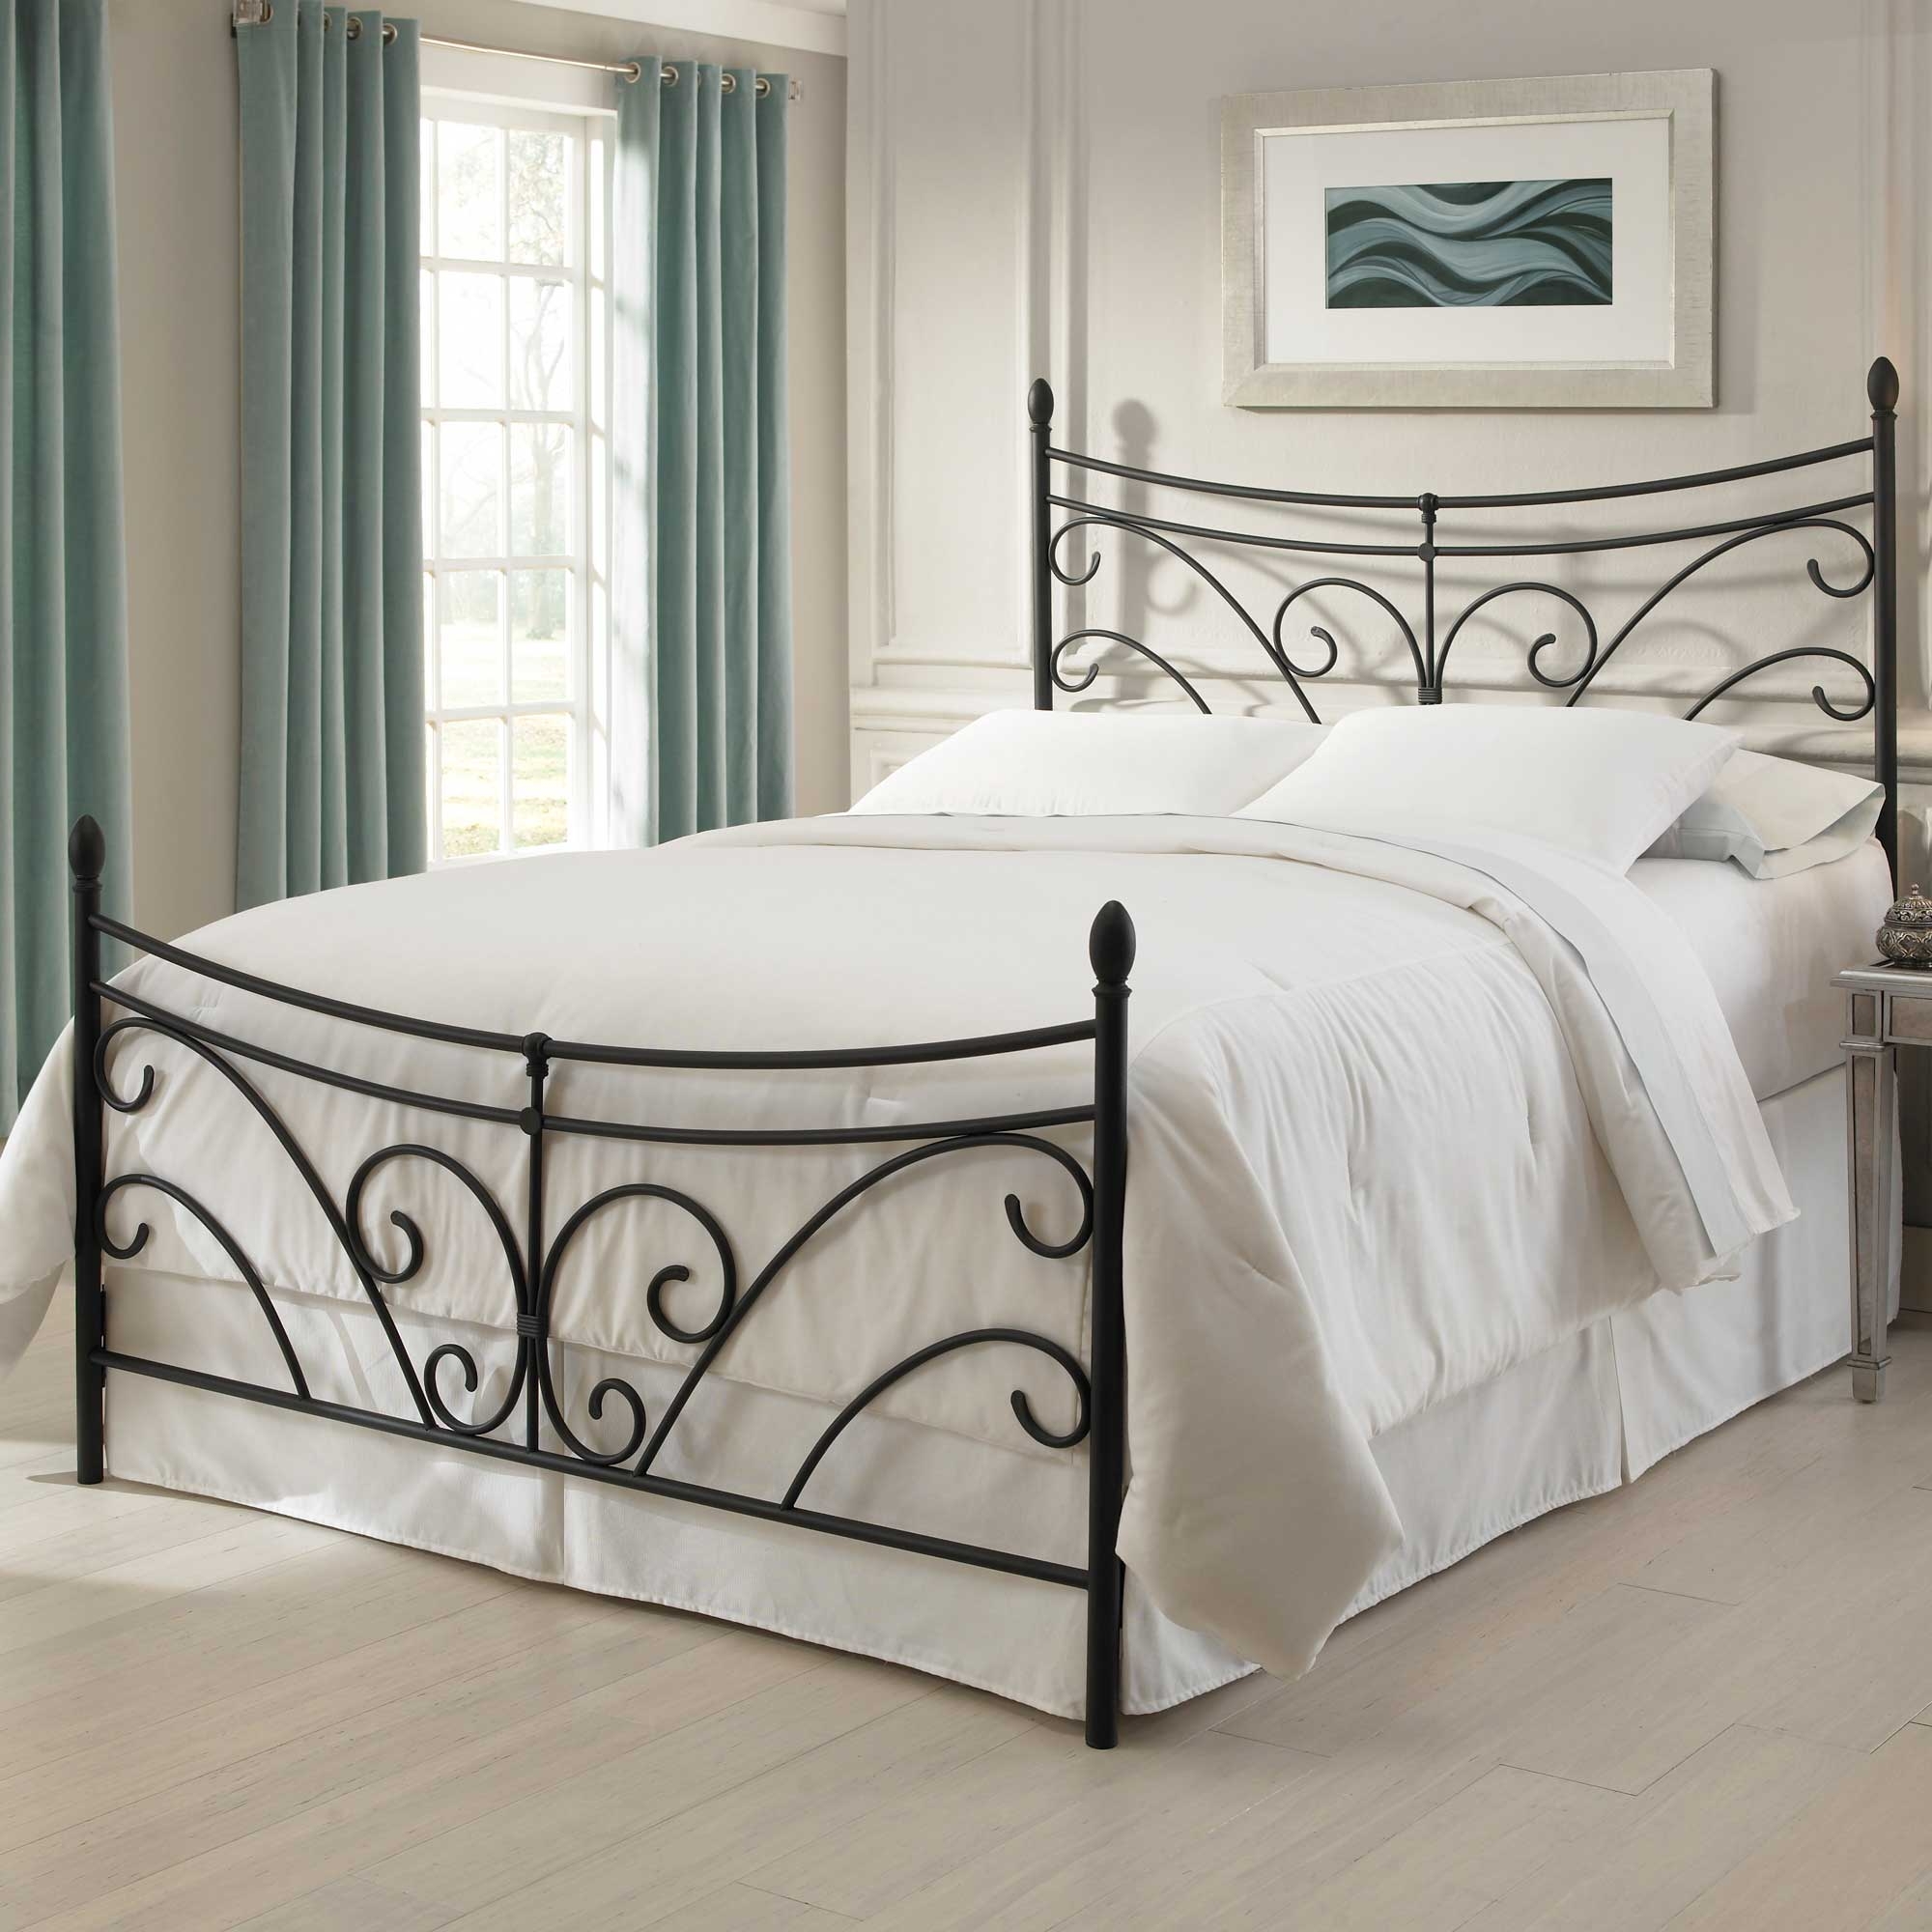 Metal Bed Headboard : Home > Bedroom > Iron Beds >